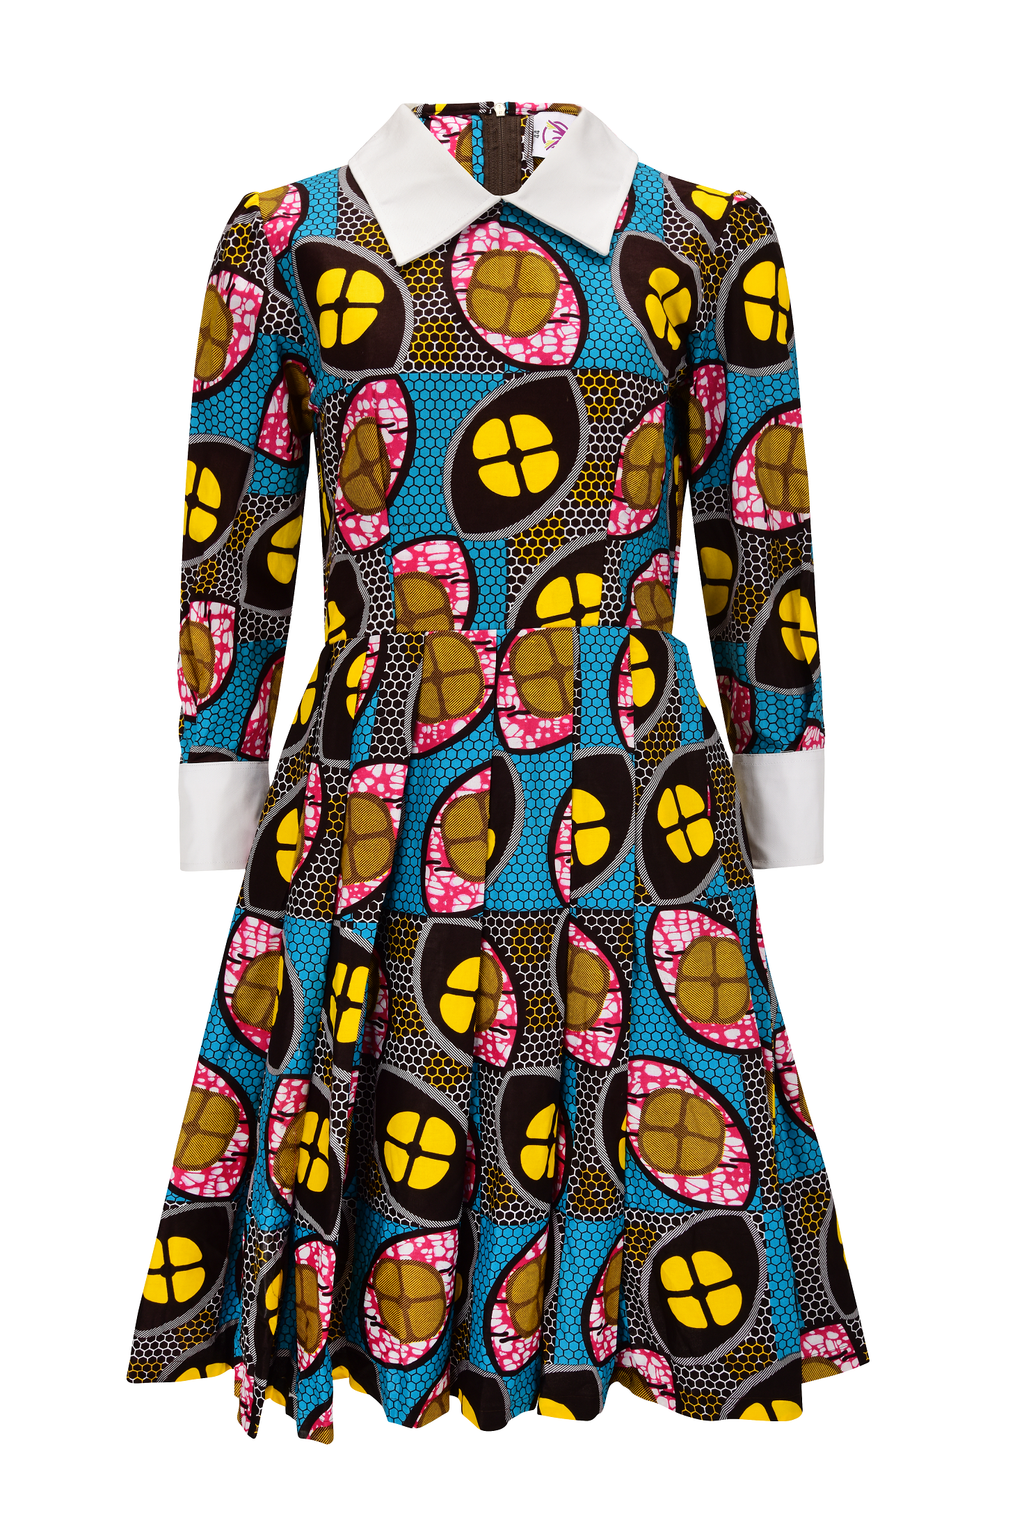 african print NOUNUC midi dress.